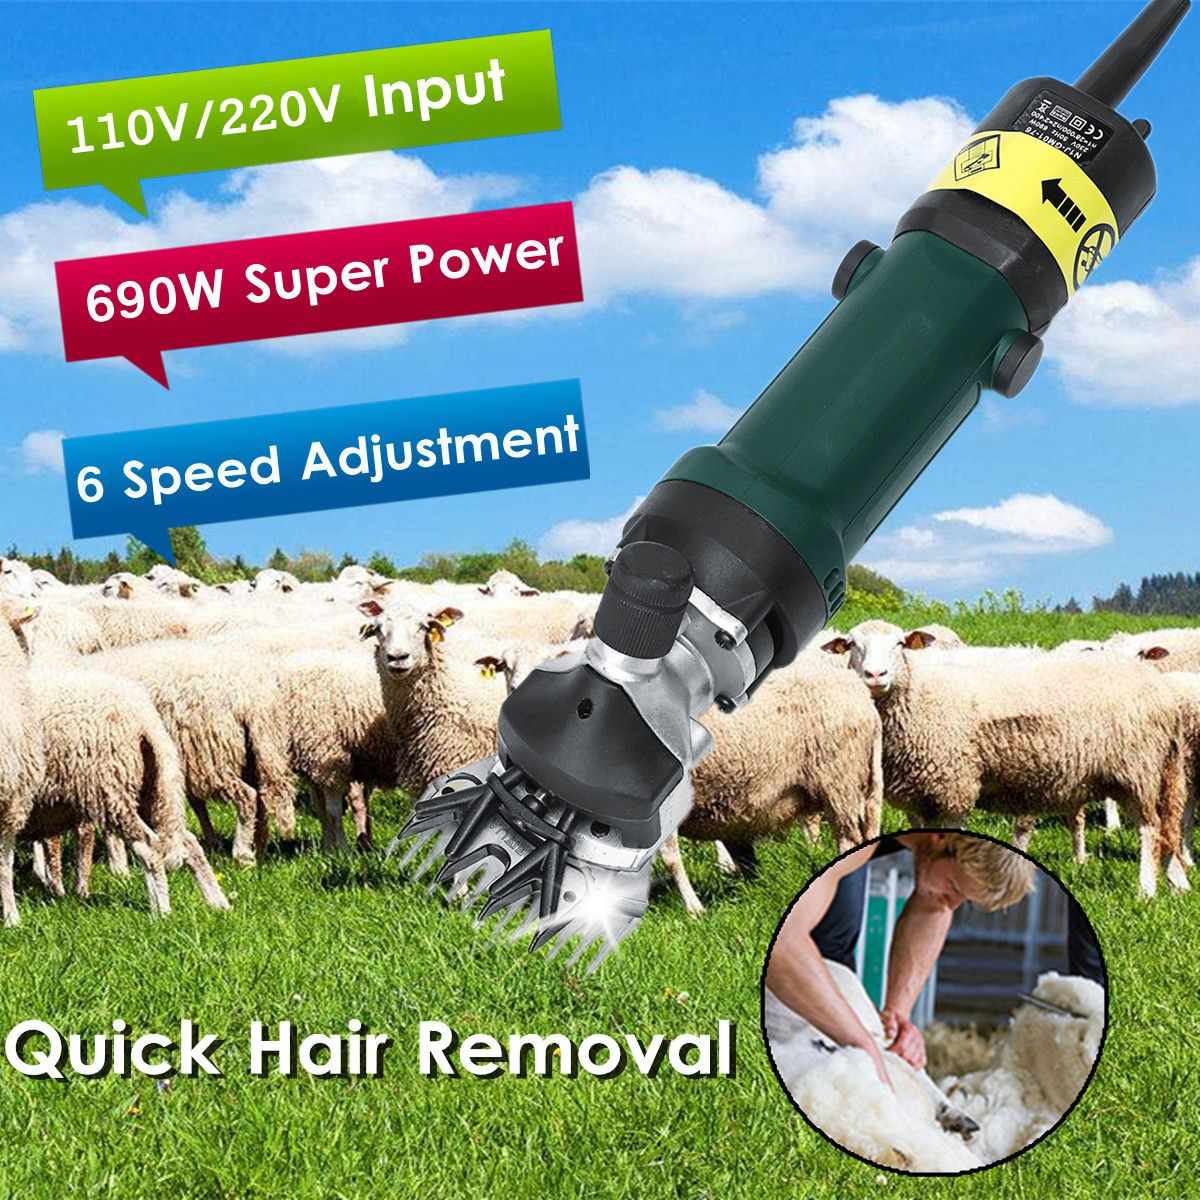 Electric Sheep Shearing Clipper 690W 6 Speed Adjustable Shears Goat Hair Removal Trimmer Light Weight Durable Solid High Speed